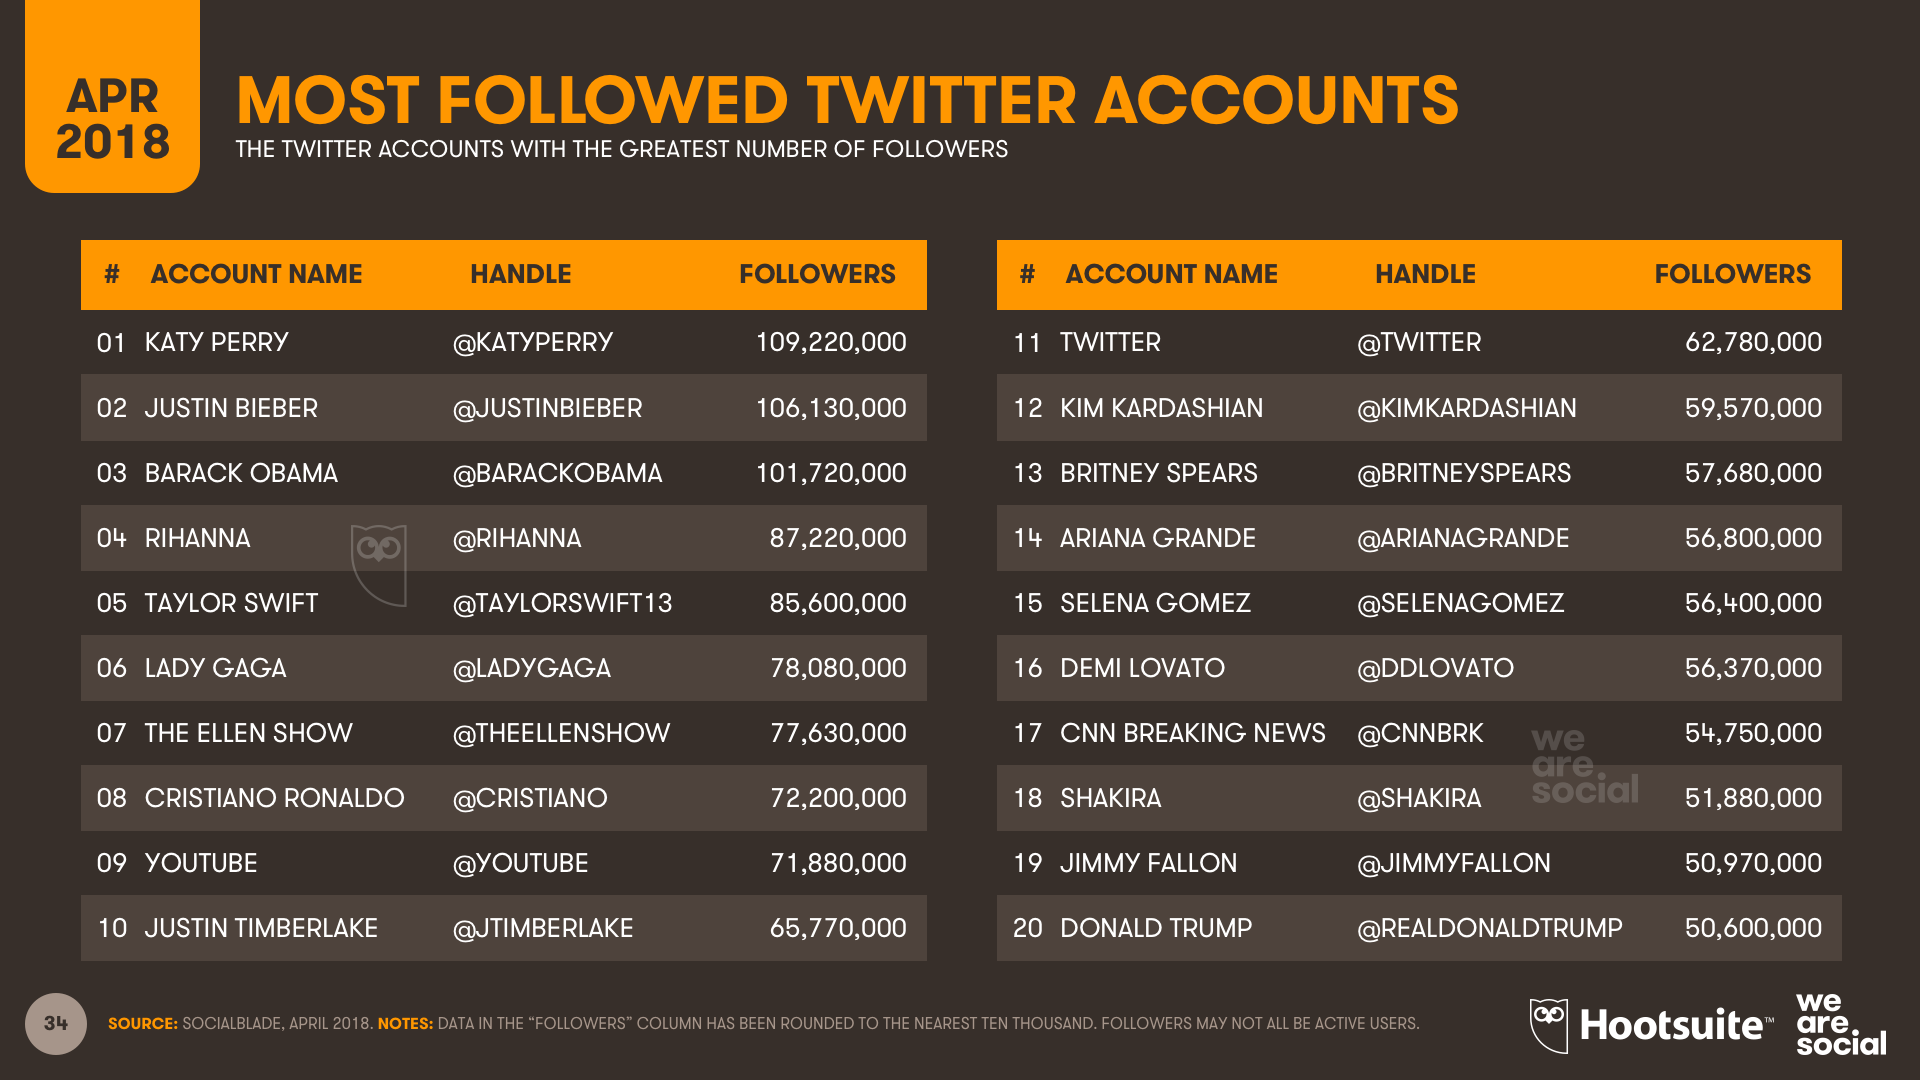 Twitter Accounts with the Most Followers Worldwide, April 2018